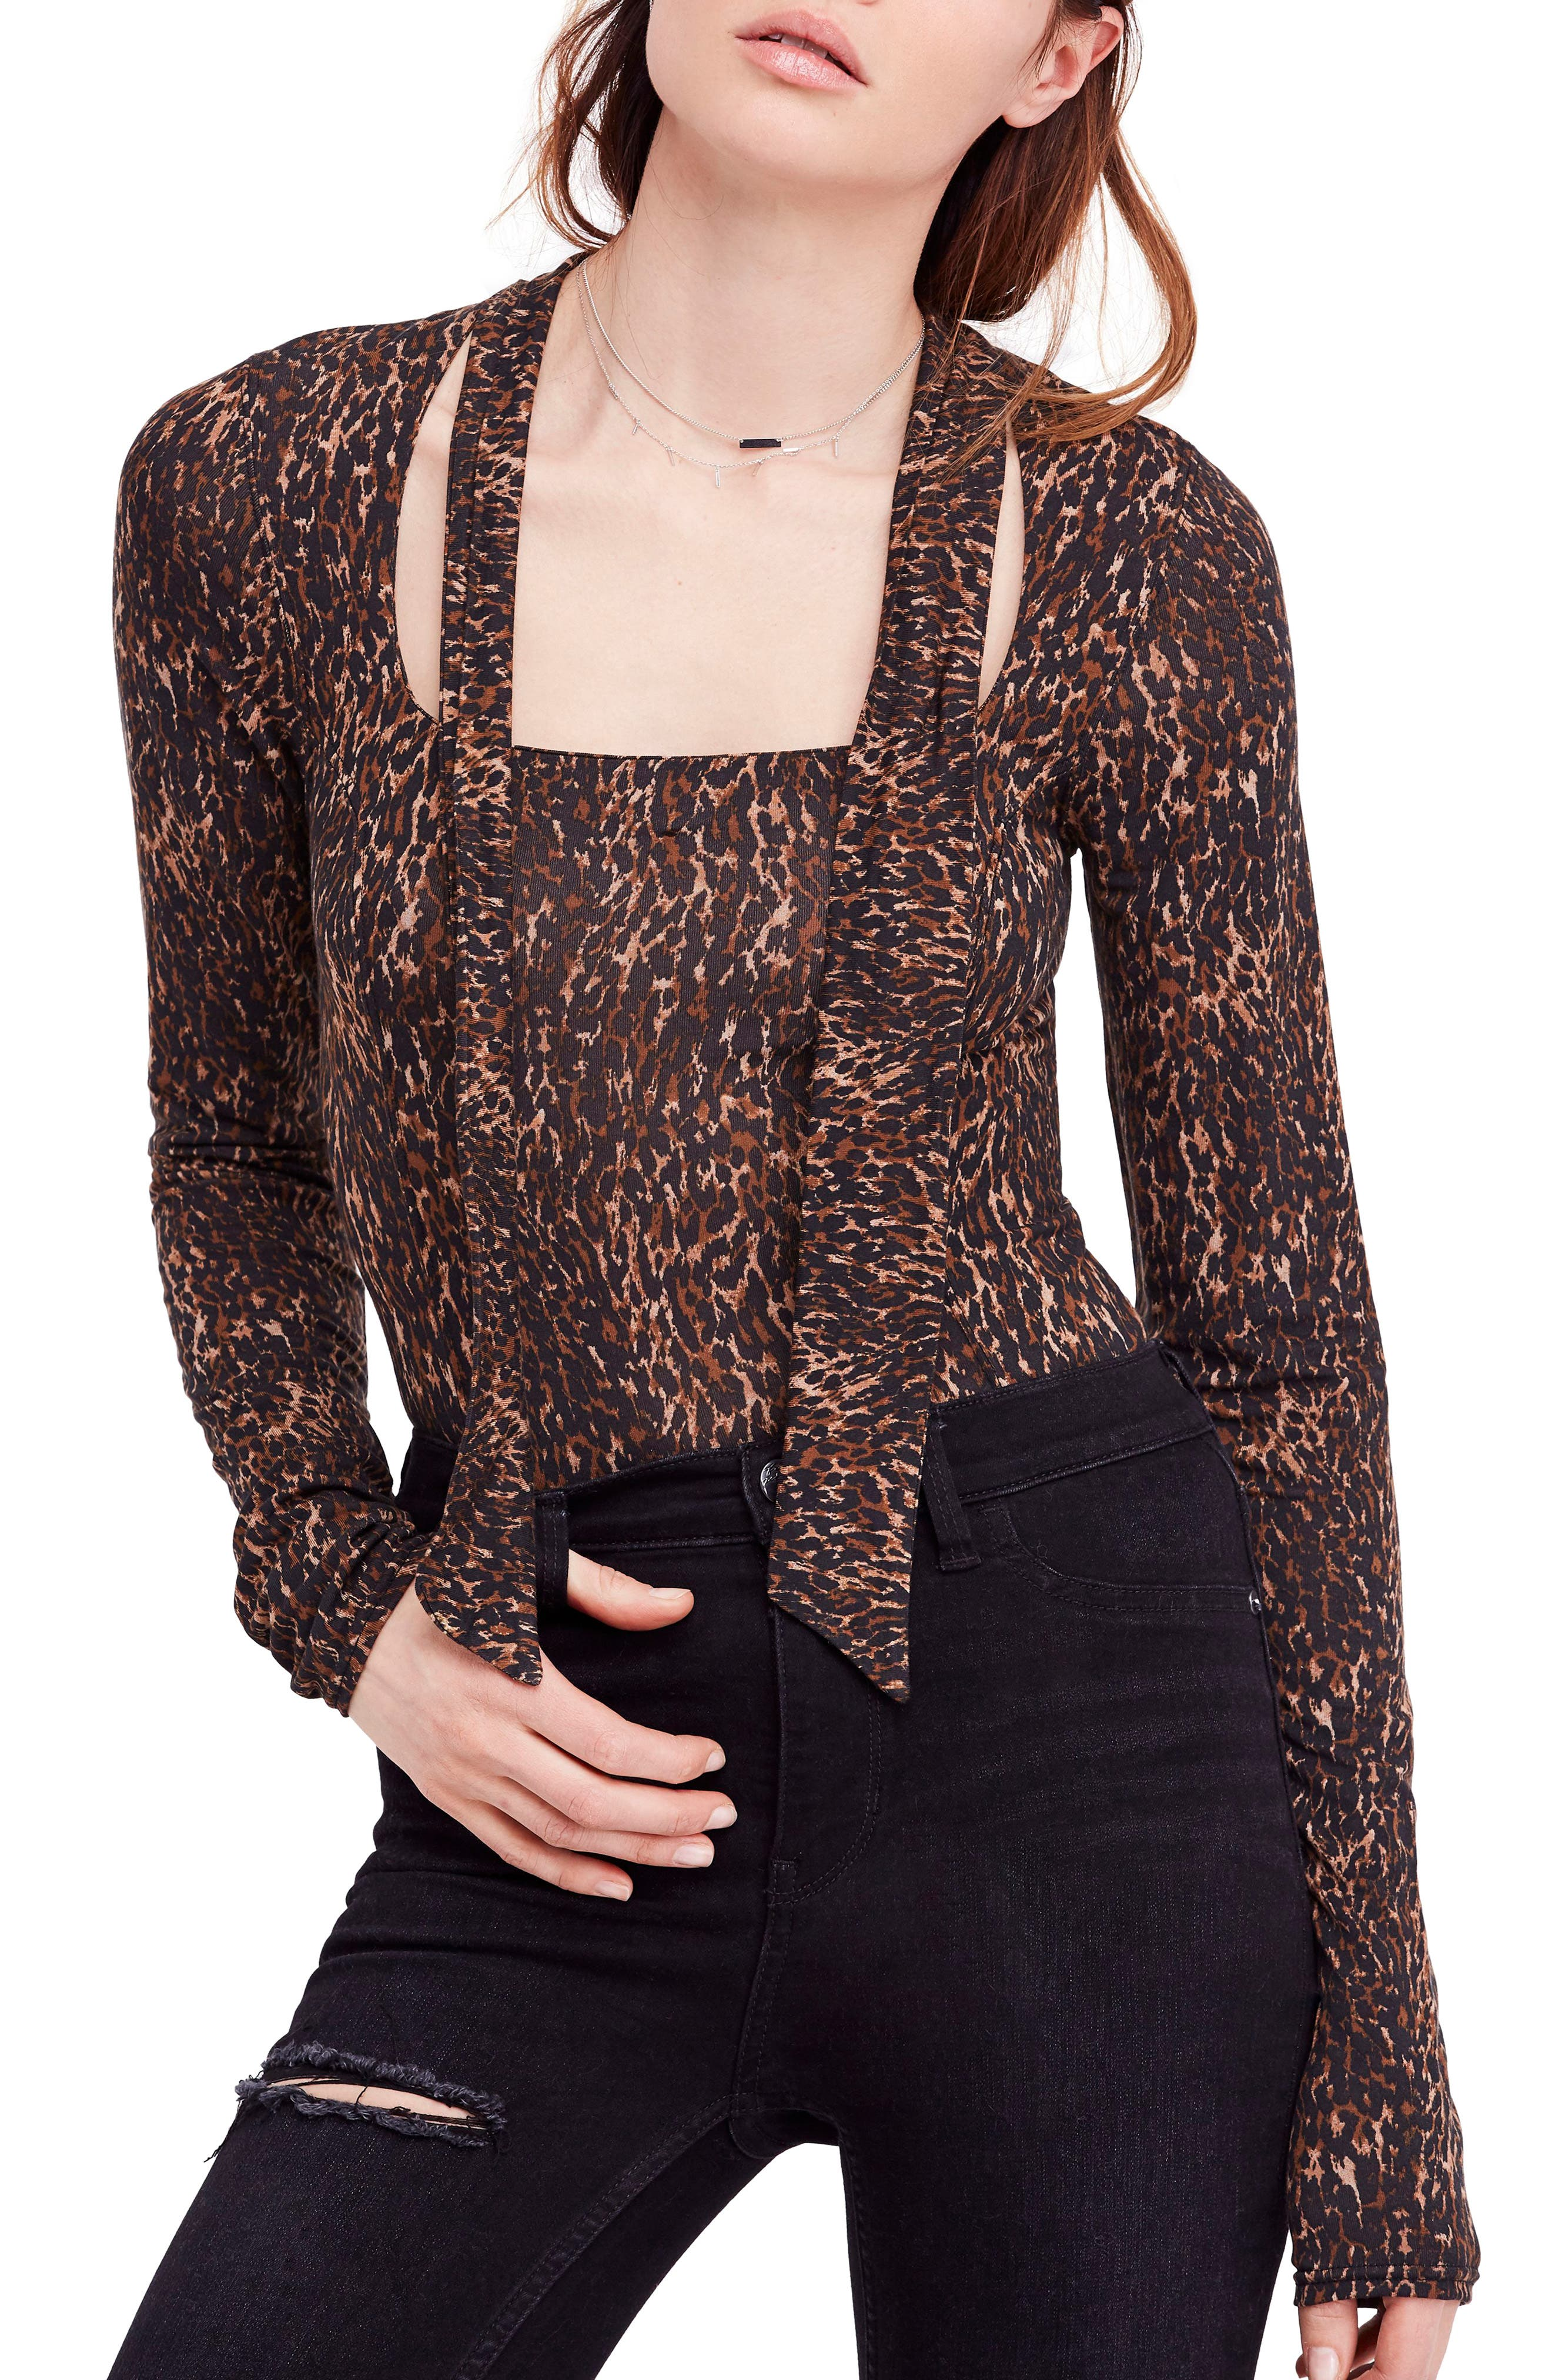 Wild Thing Leopard Print Top,                             Main thumbnail 1, color,                             214